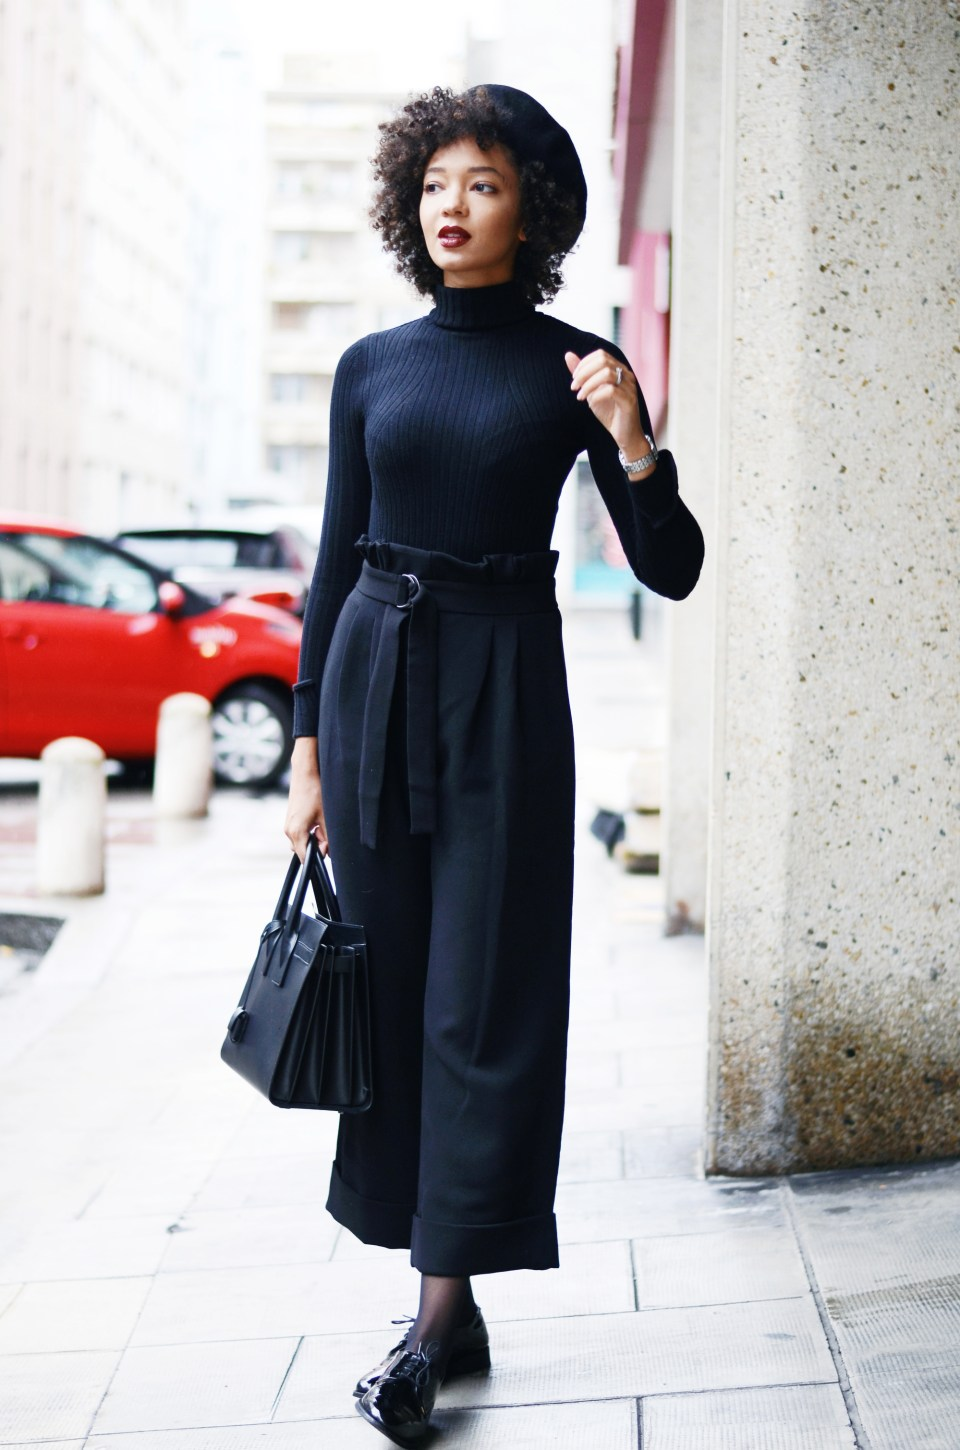 mercredie-blog-mode-geneve-suisse-fashion-blogger-all-black-outfit-chic-saint-laurent-sac-de-jour-black-matte-derbies-vernies-shoepassion-102-afro-beret